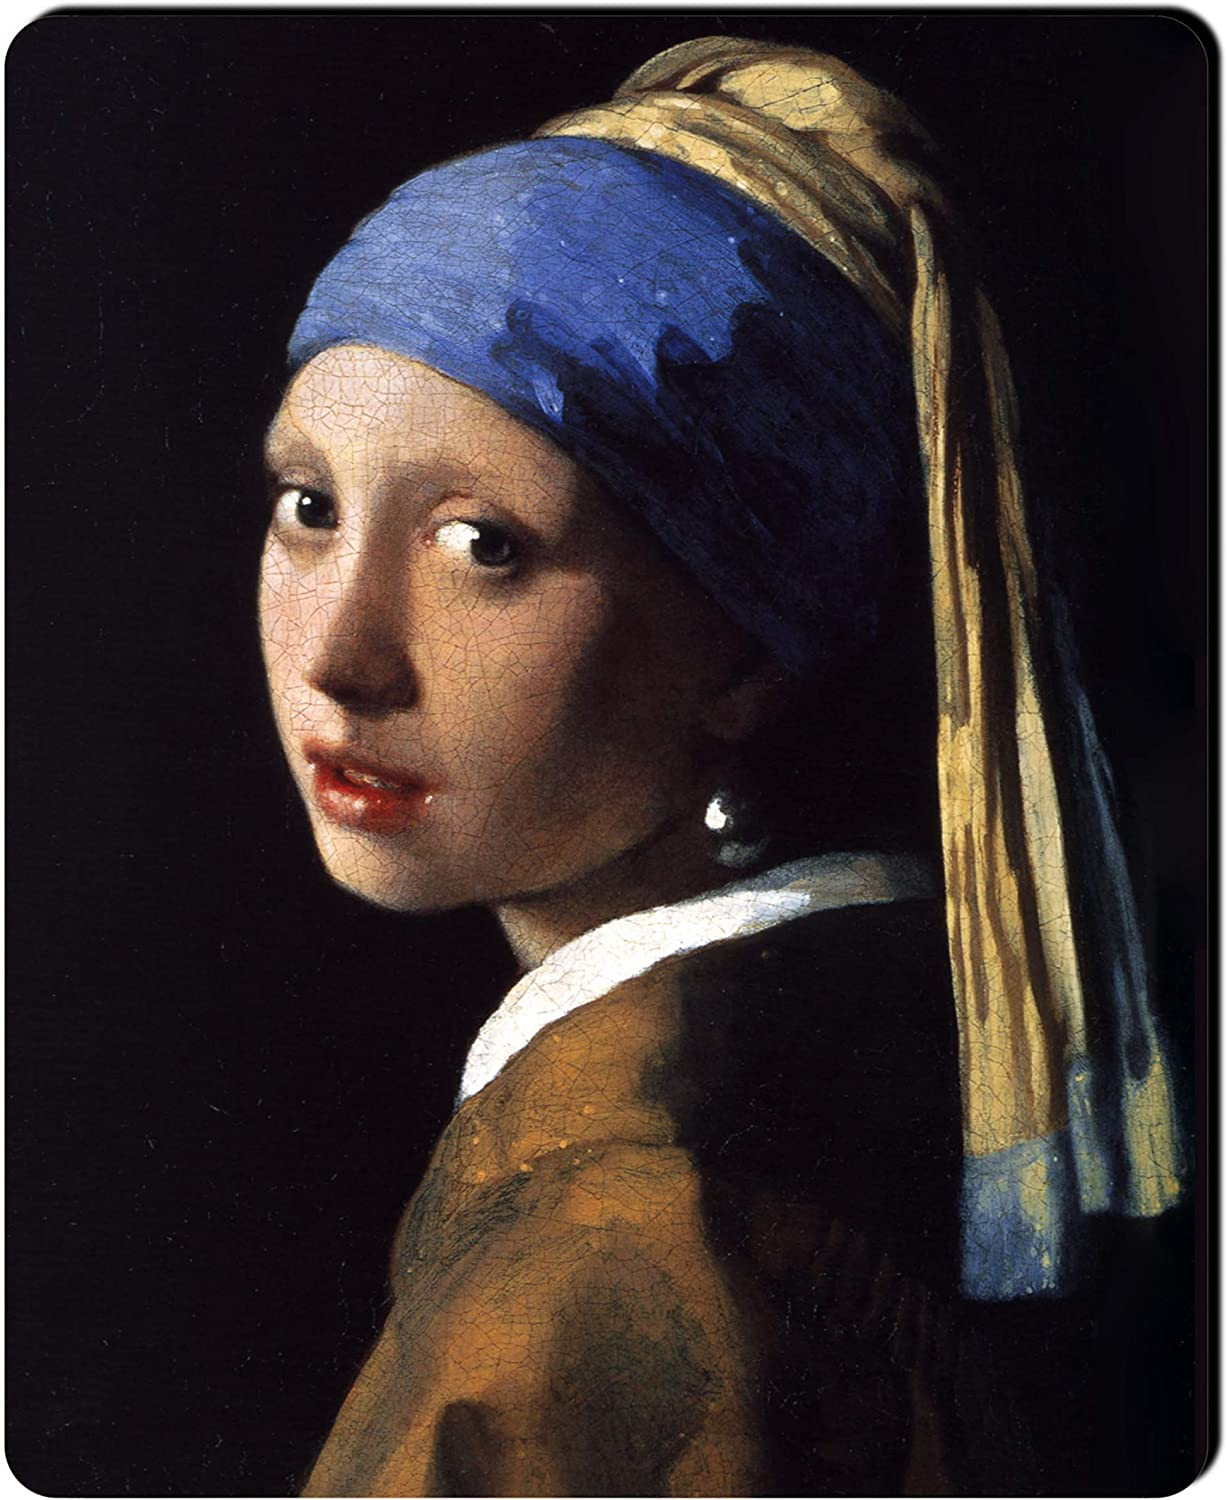 Nextation Famous Paintings Series Gaming Mouse Pad Girl with a Pearl Earring Ultra Thick Silky Smooth 11.8 x 9.8 x 0.2 inches Medium Size